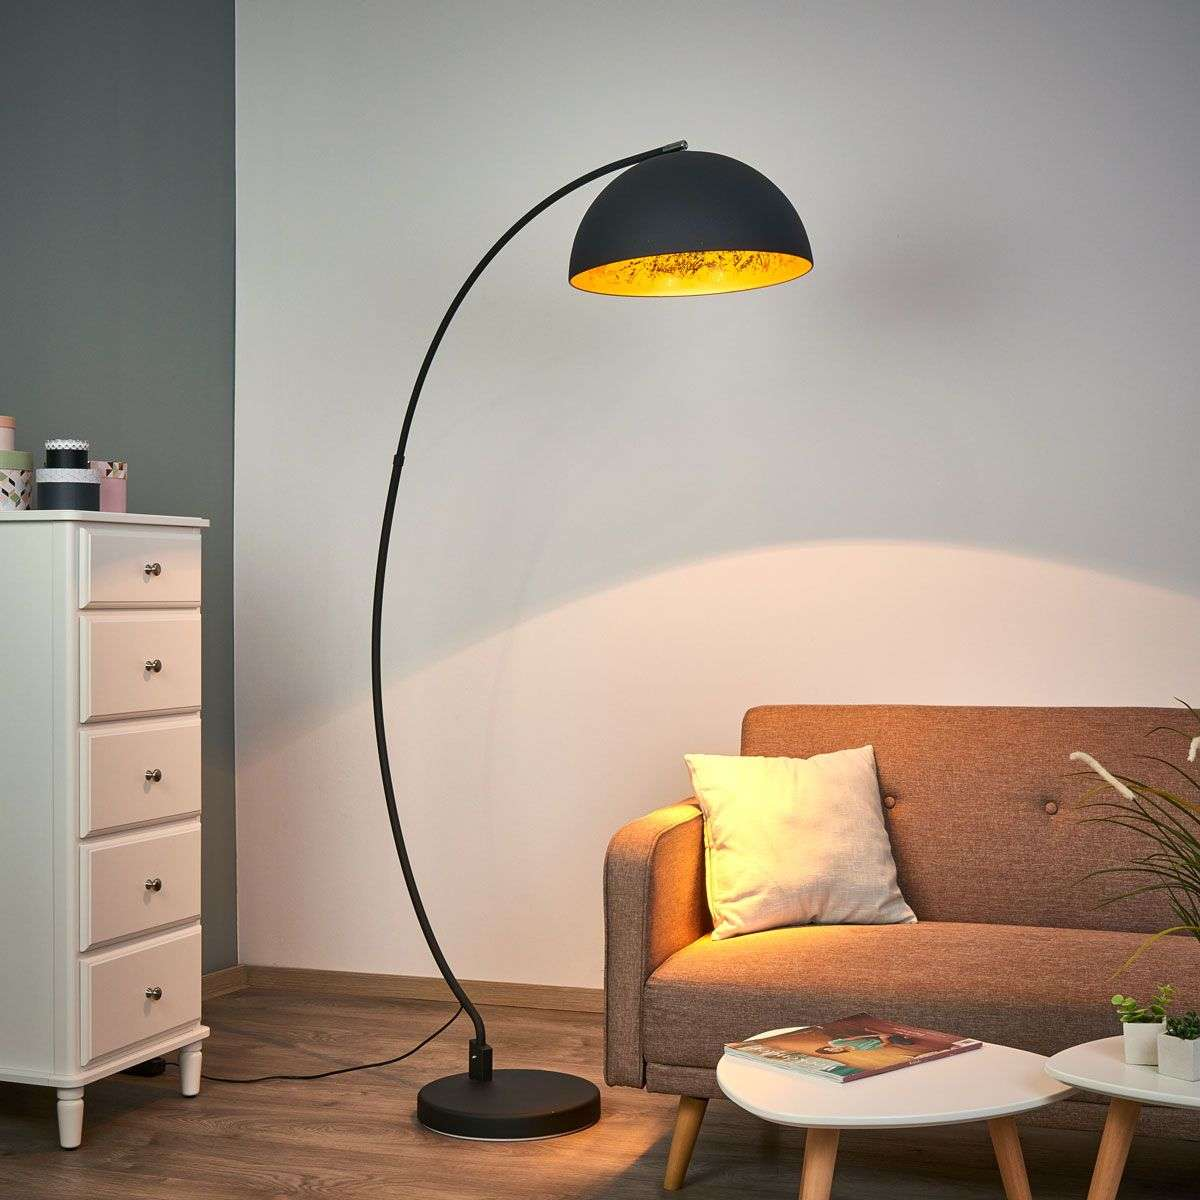 gebogen staande lamp golden sun. Black Bedroom Furniture Sets. Home Design Ideas